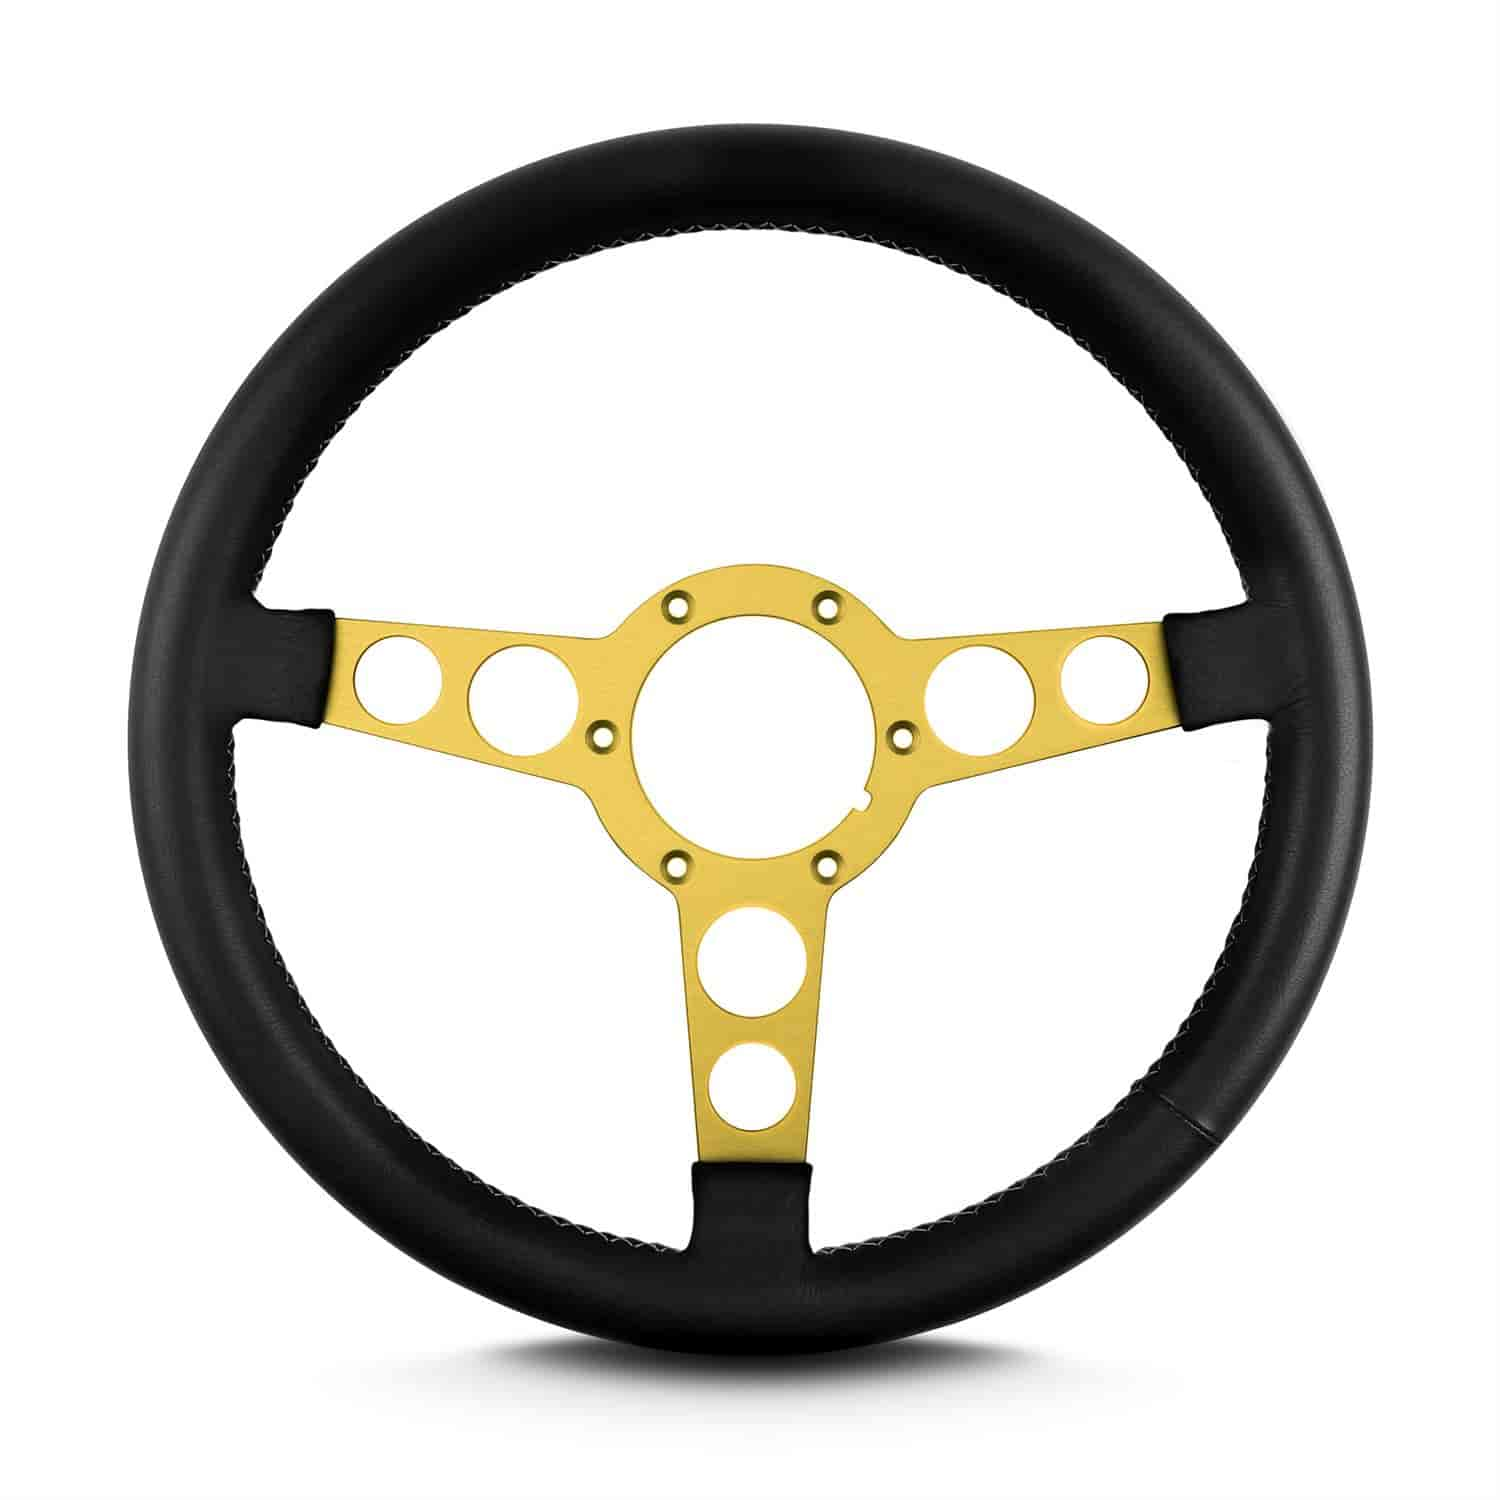 Lecarra 62401 - Lecarra Trans AM Steering Wheels